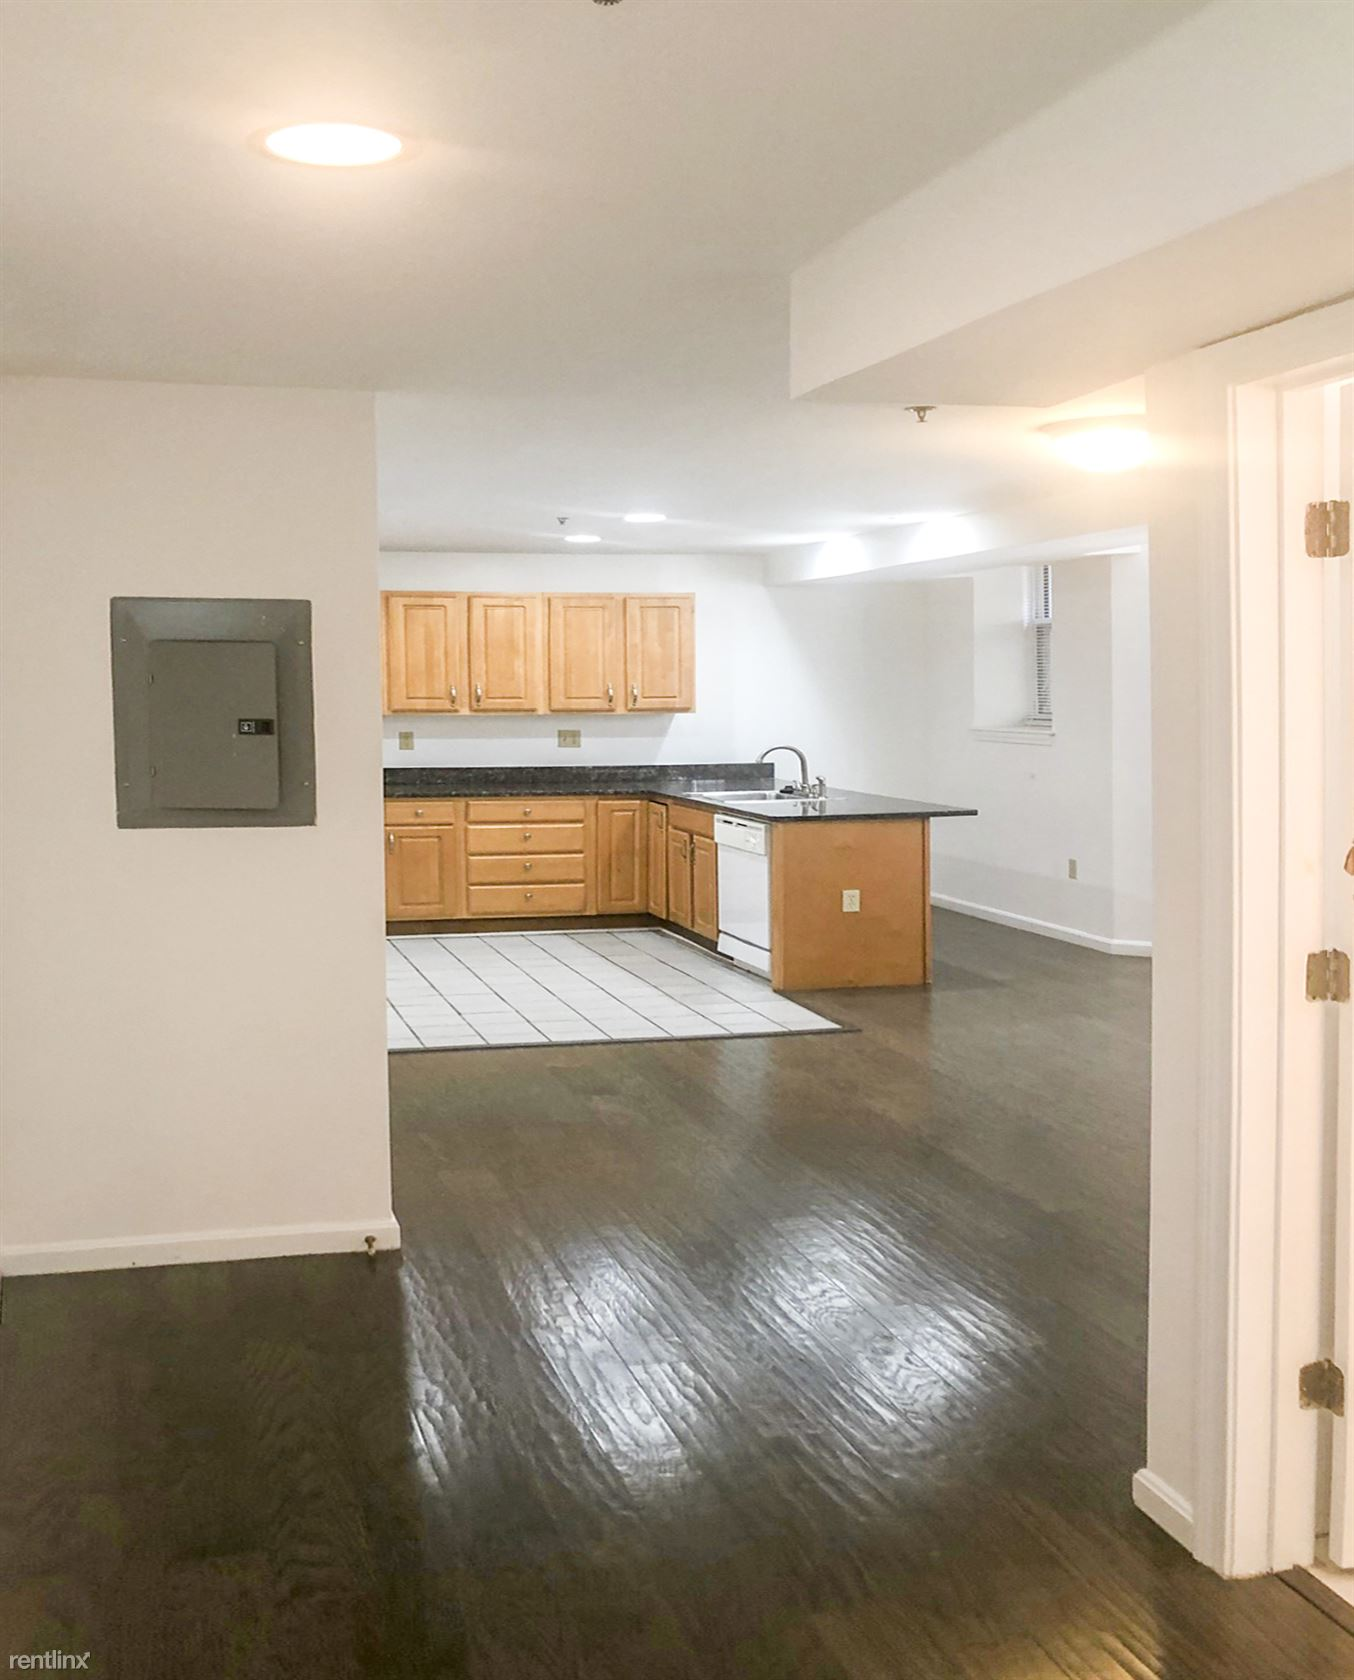 66 Queensberry St Apt 117C, Boston, MA - $2,575